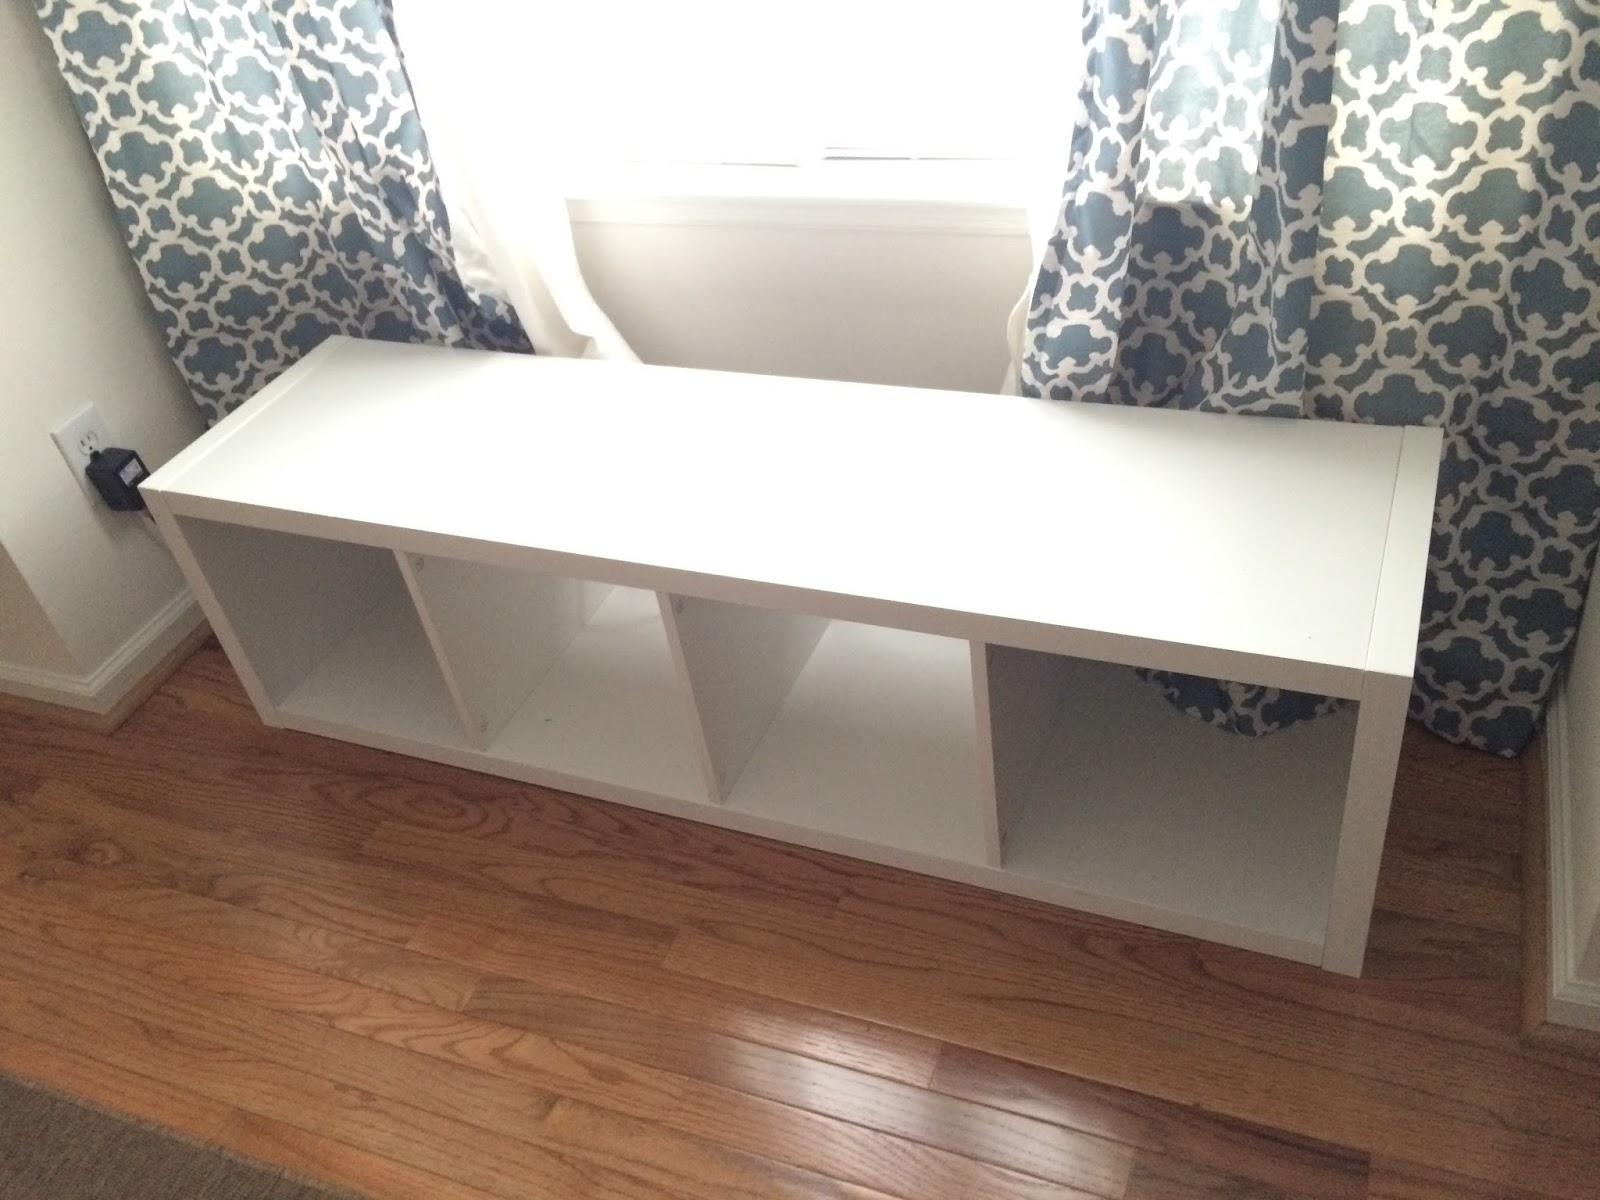 The adorable mess diy ikea kallax storage bench Storage bench ikea